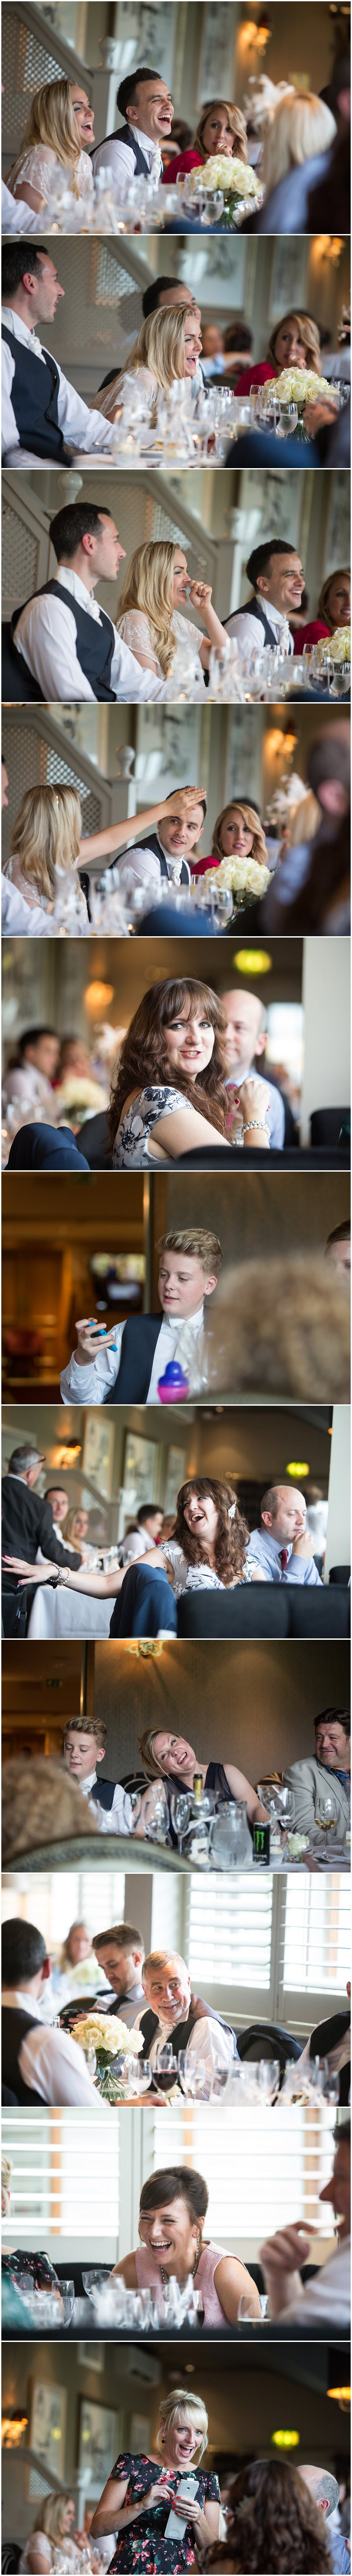 Guests enjoying evening meal at Red Hall Hotel Bury Photographer